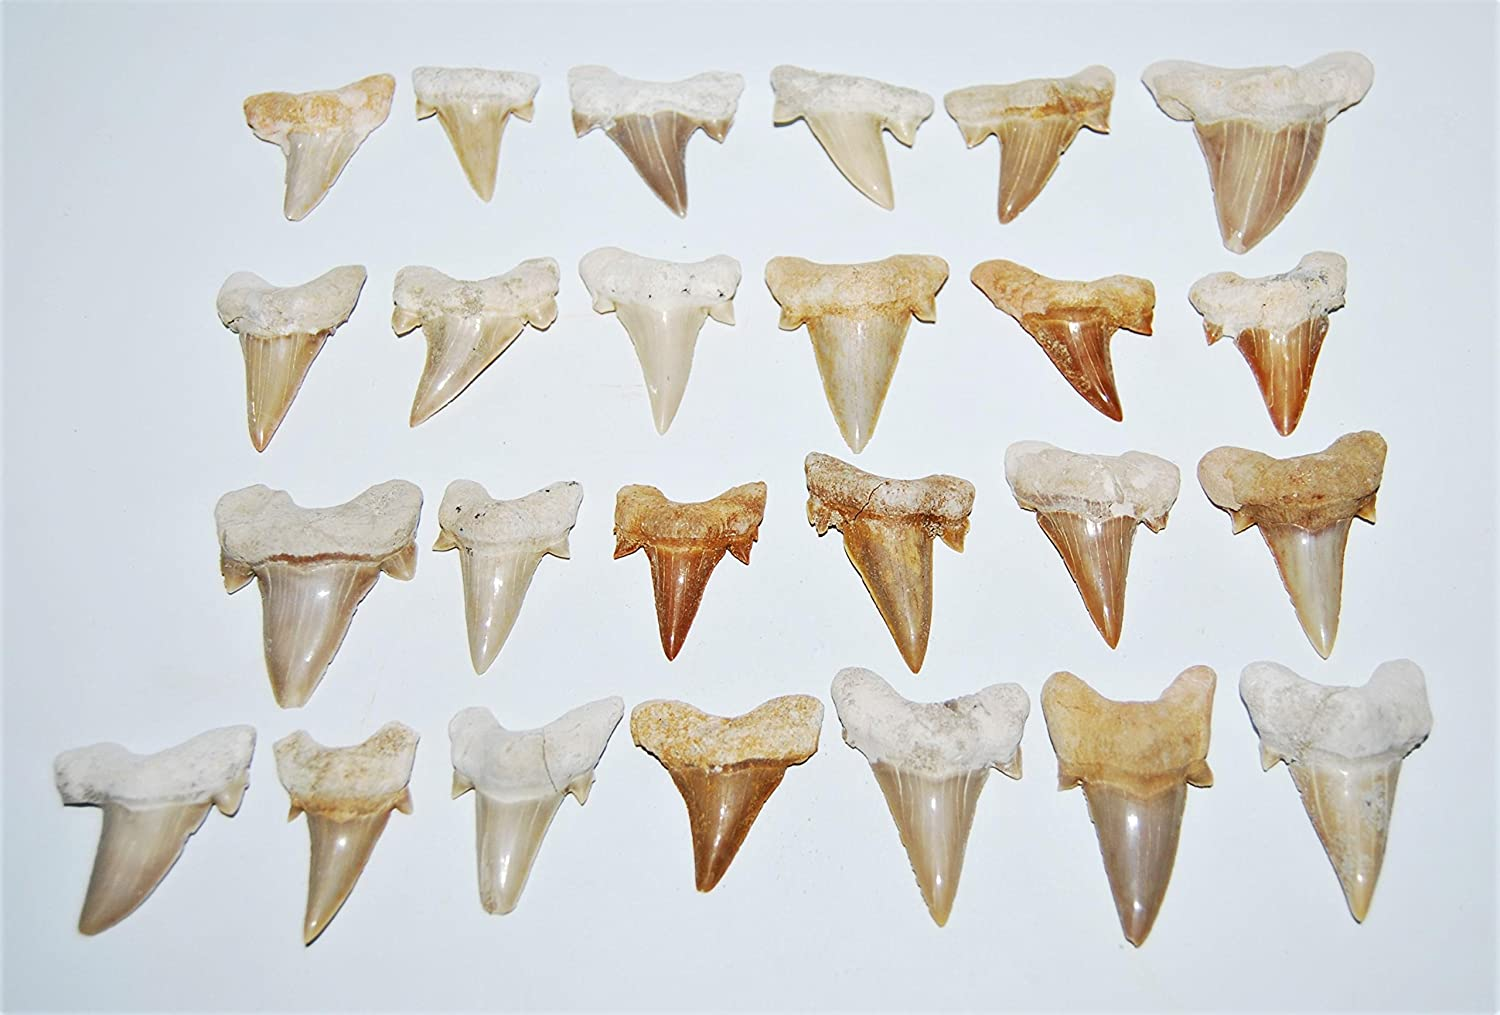 OTODUS Shark Tooth Medium LOT of 25 Real Fossils 1 1/4 to 2 inch Size Meteorites & More